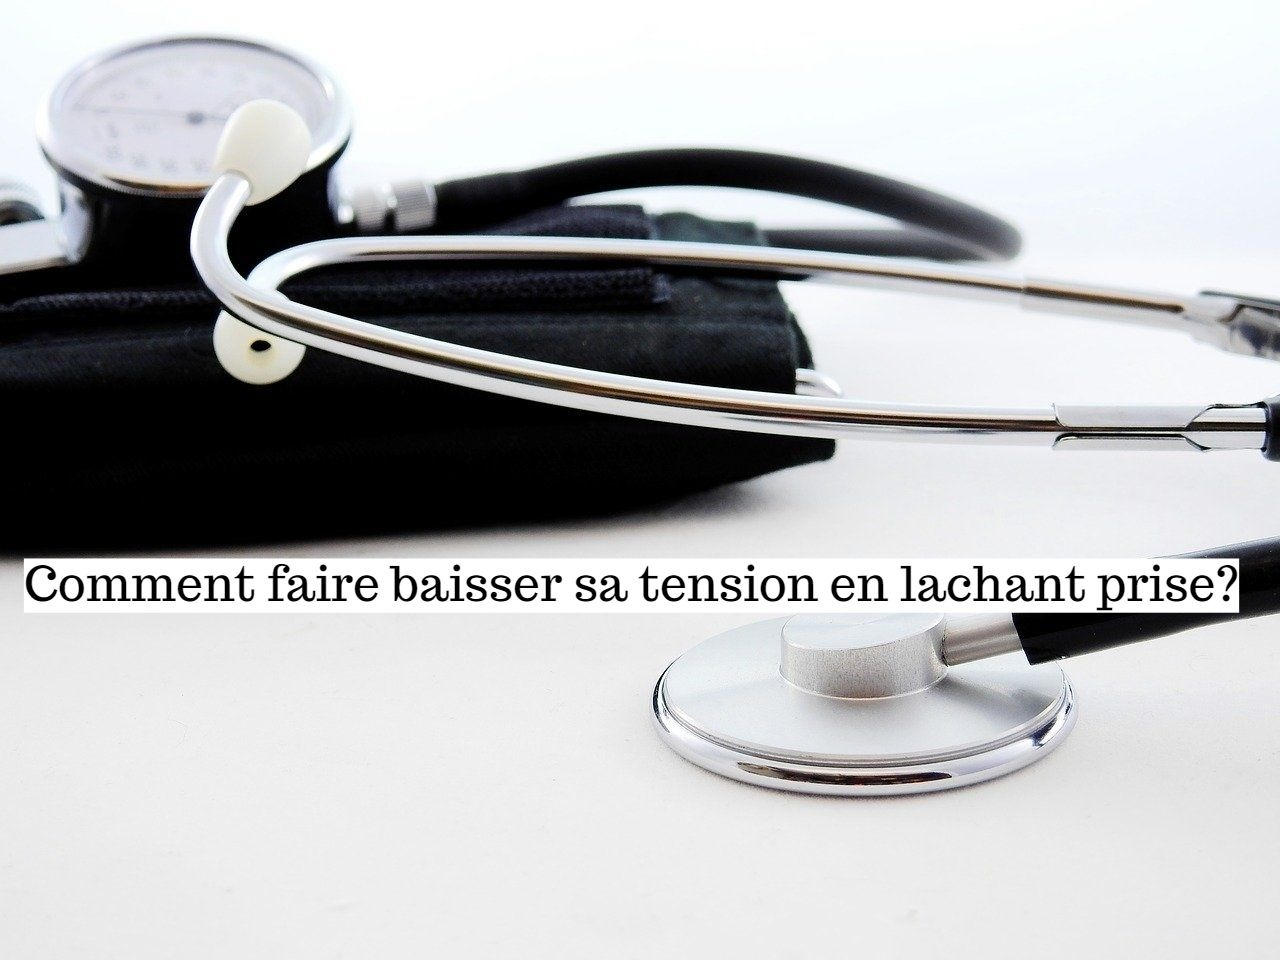 Comment faire baisser sa tension en lâchant prise?